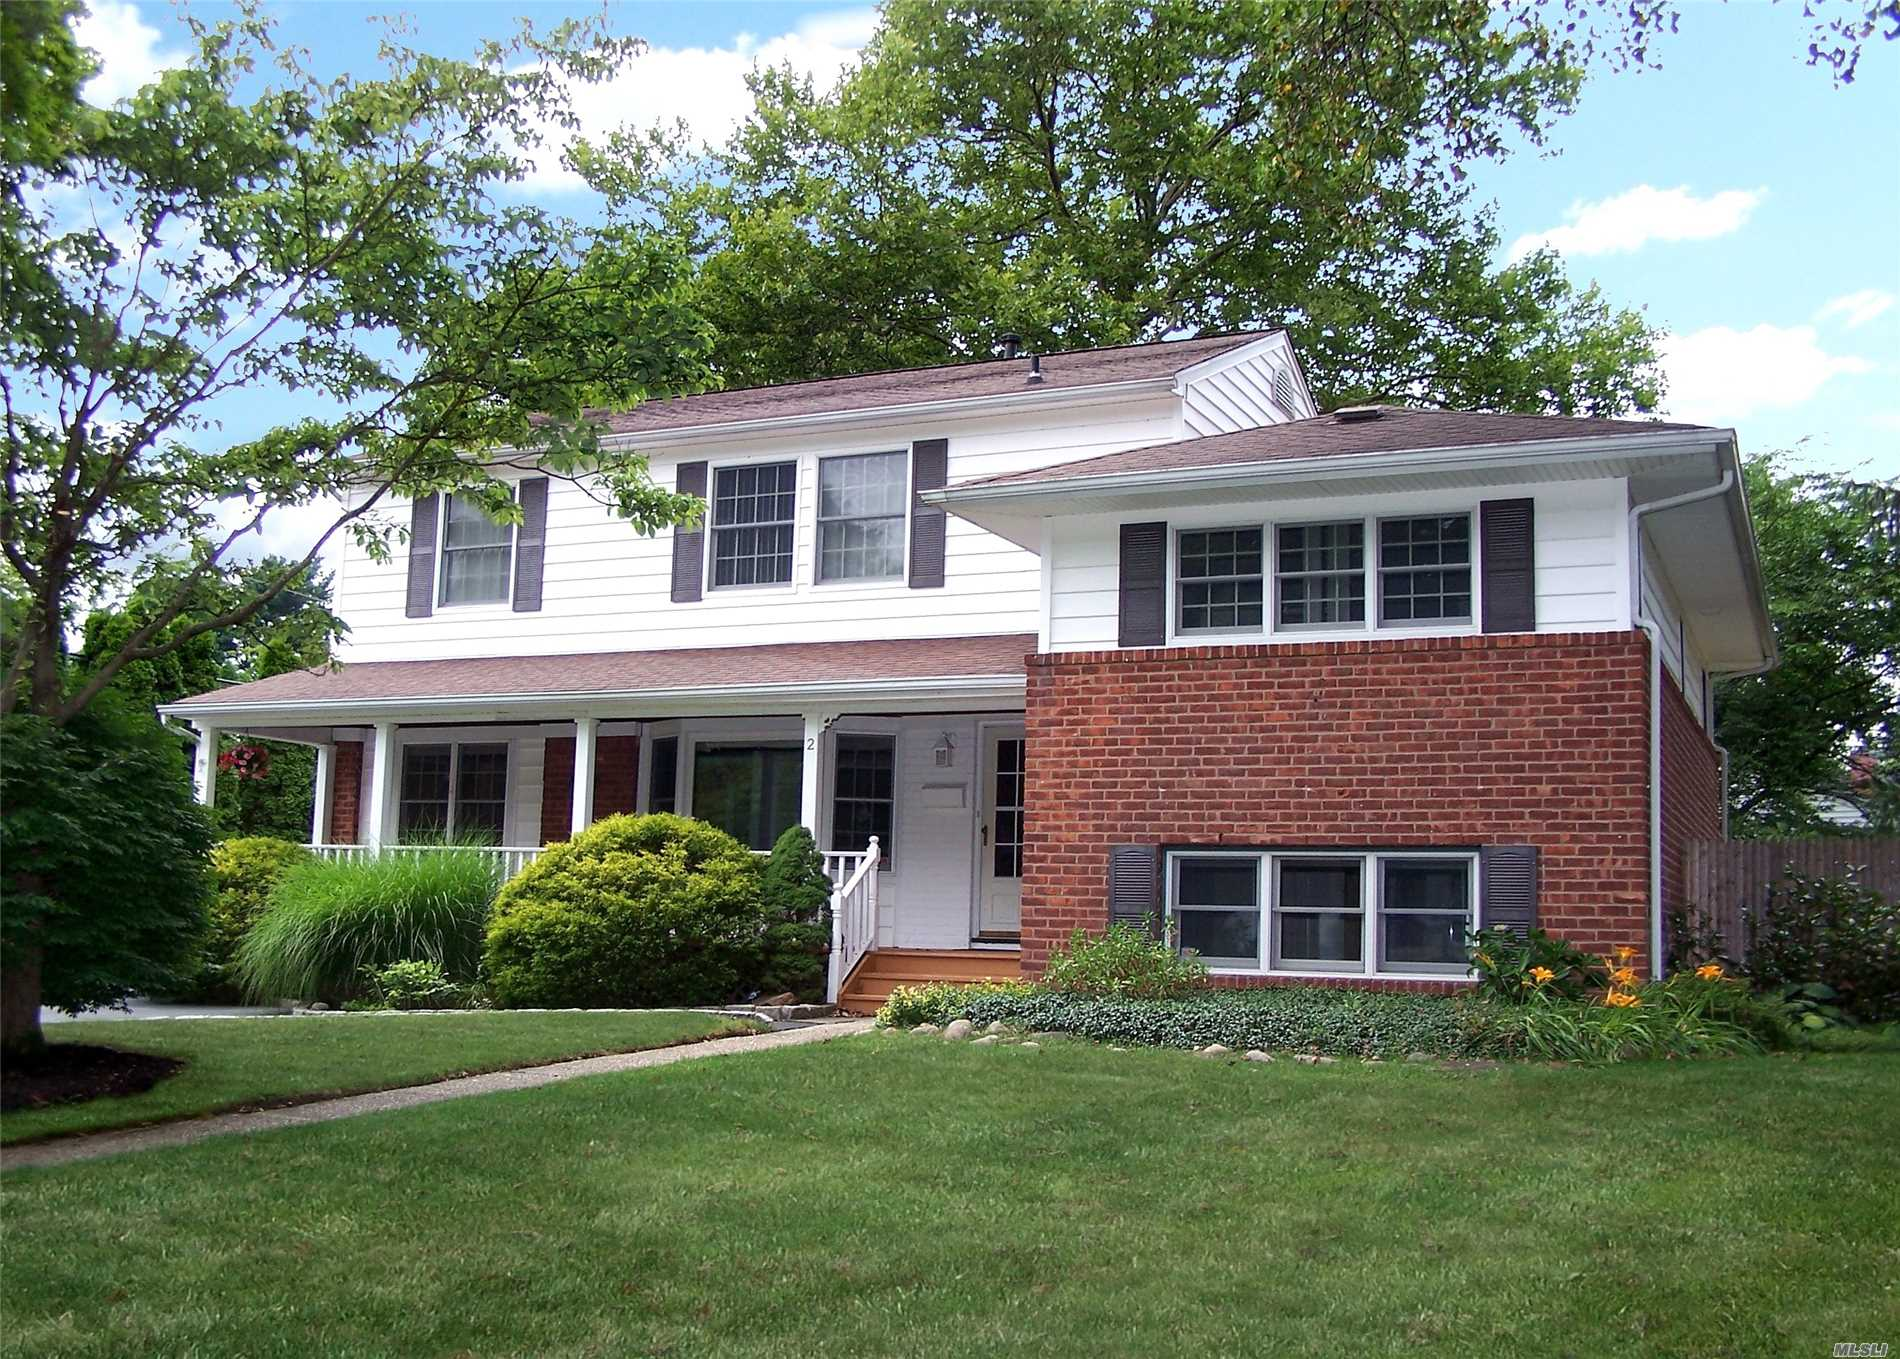 Home Sweet Home! Warm & Inviting Expanded 12Rm, 6Br, 2.5Bth. Plenty Of Room For Mom W/Ose. Lr W/Picture Bay Window, Lg Eik W/Sliders To Deck & Updtd Appl, Hw Flrs, Beautiful Cozy Front Porch To Enjoy. New Hw Heater, Updated Burner, Large Corner Property. Basement Great Storage. Famed Commack Sd 2018 Top Award For Top Placement District Honor Roll! Mega Shopping, Near All Major Annexed Medical Hubs Incl Stony Brook Hospital.